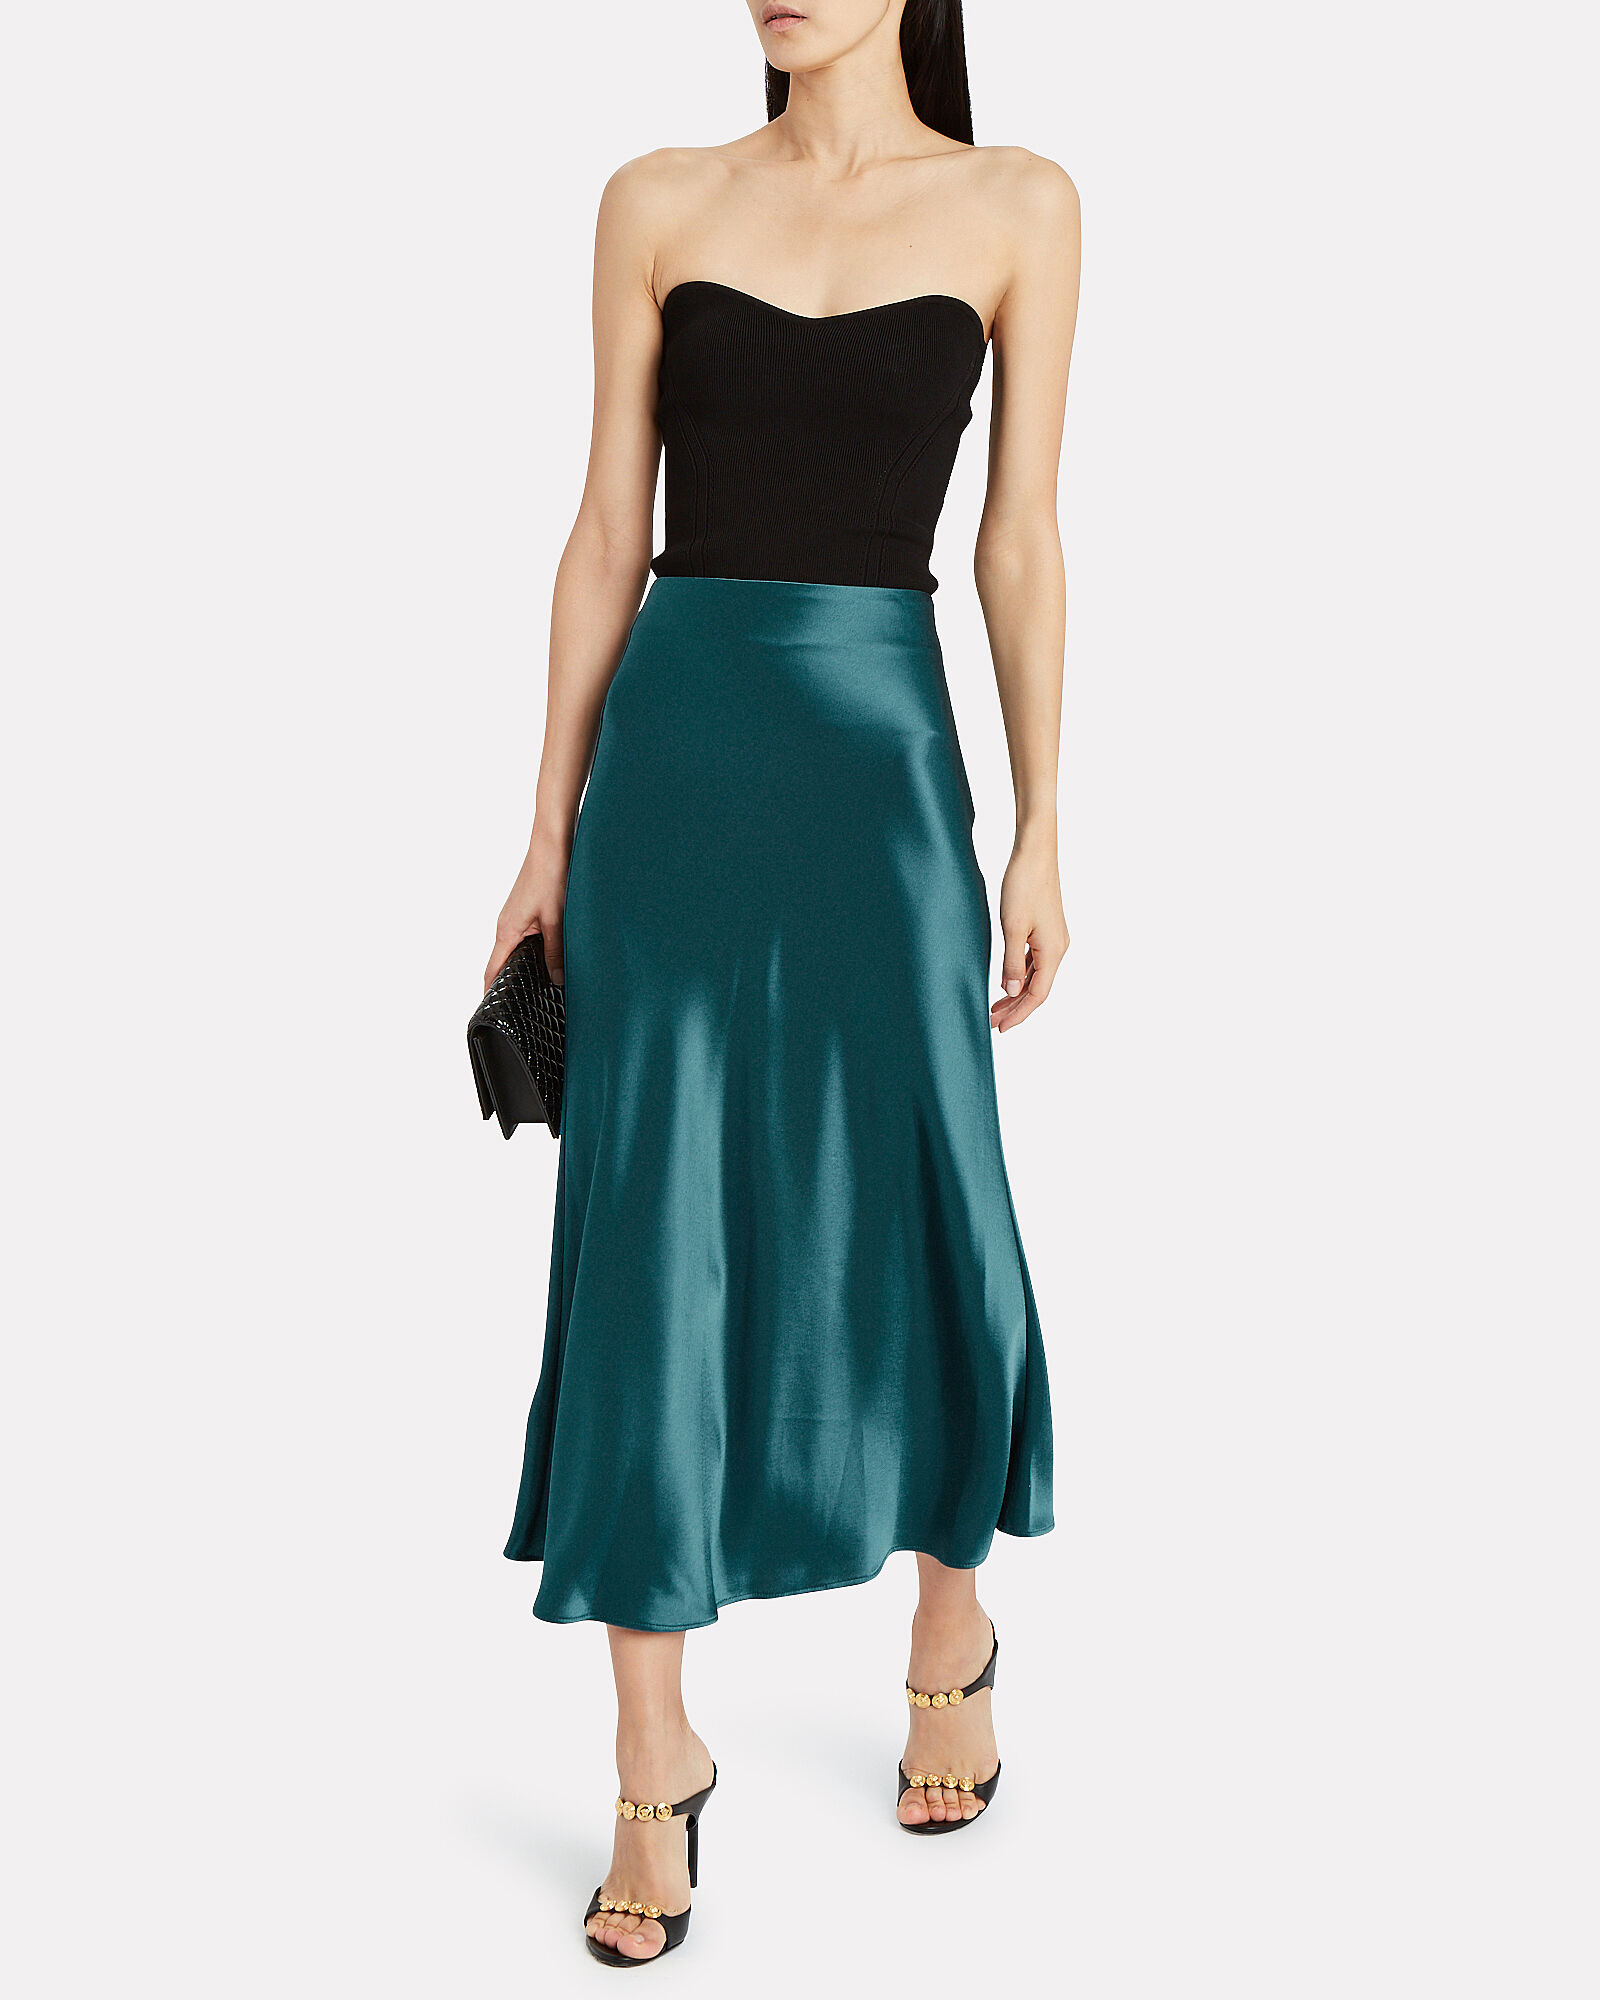 Valletta Satin Midi Skirt, BLUE-MED, hi-res